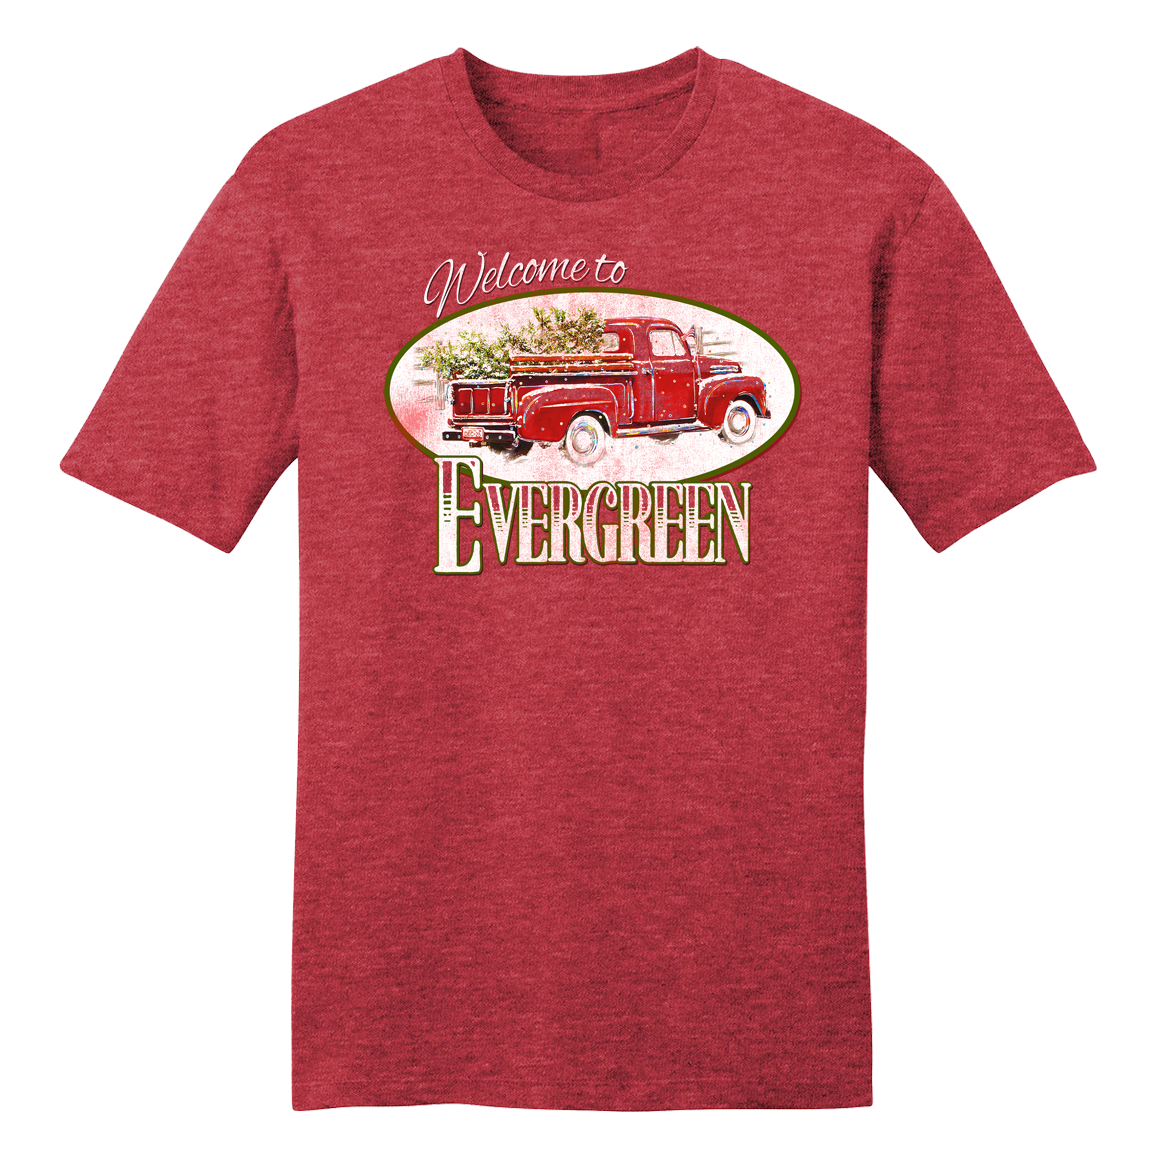 Welcome to Evergreen Truck T-shirt